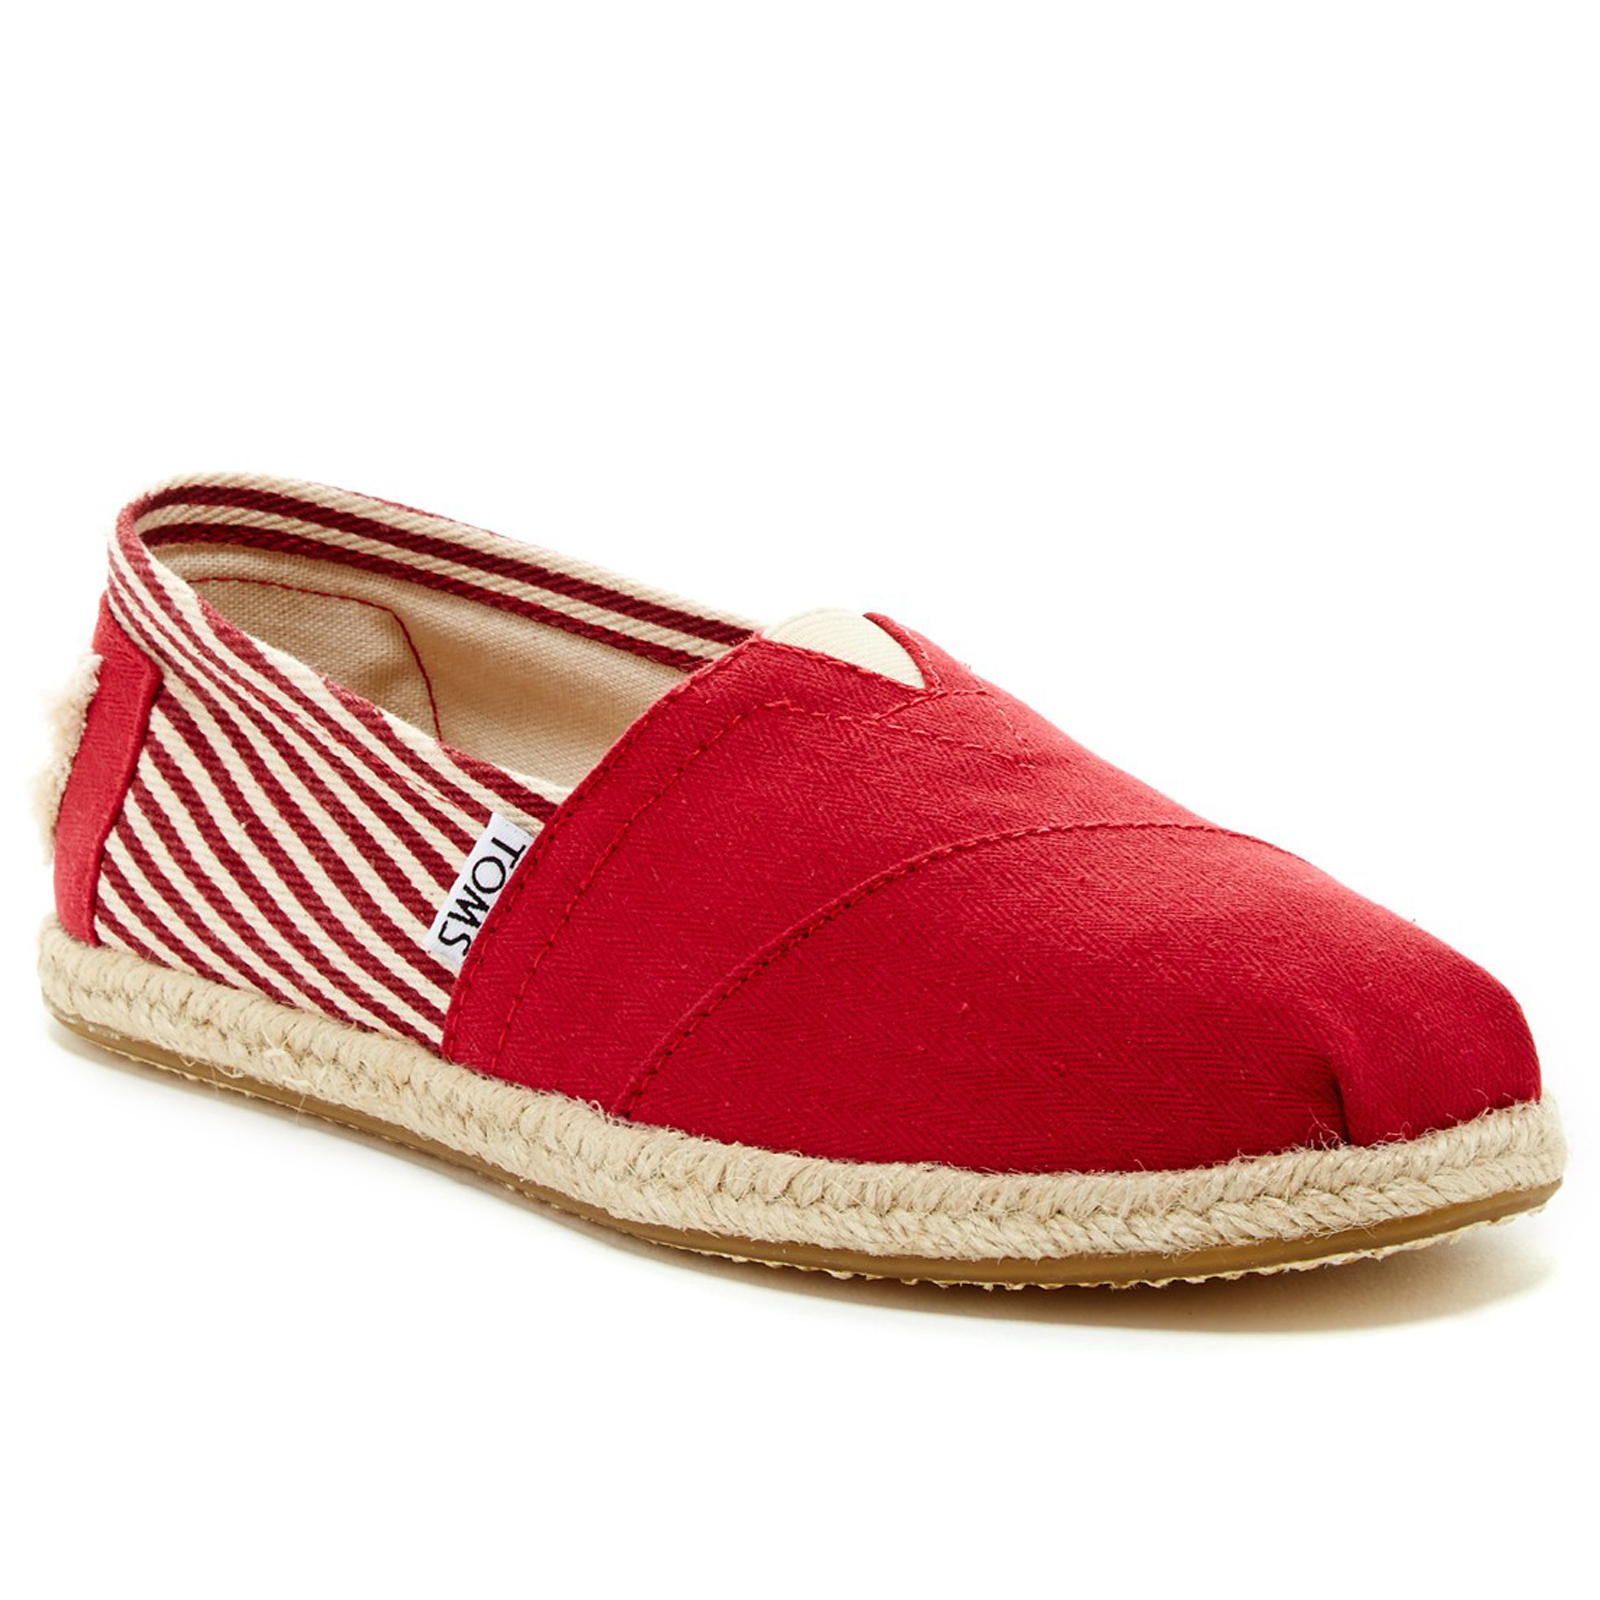 Pungles - Online Store - Woven Stripe Classic University Slip-On Red ... f792ec1f4